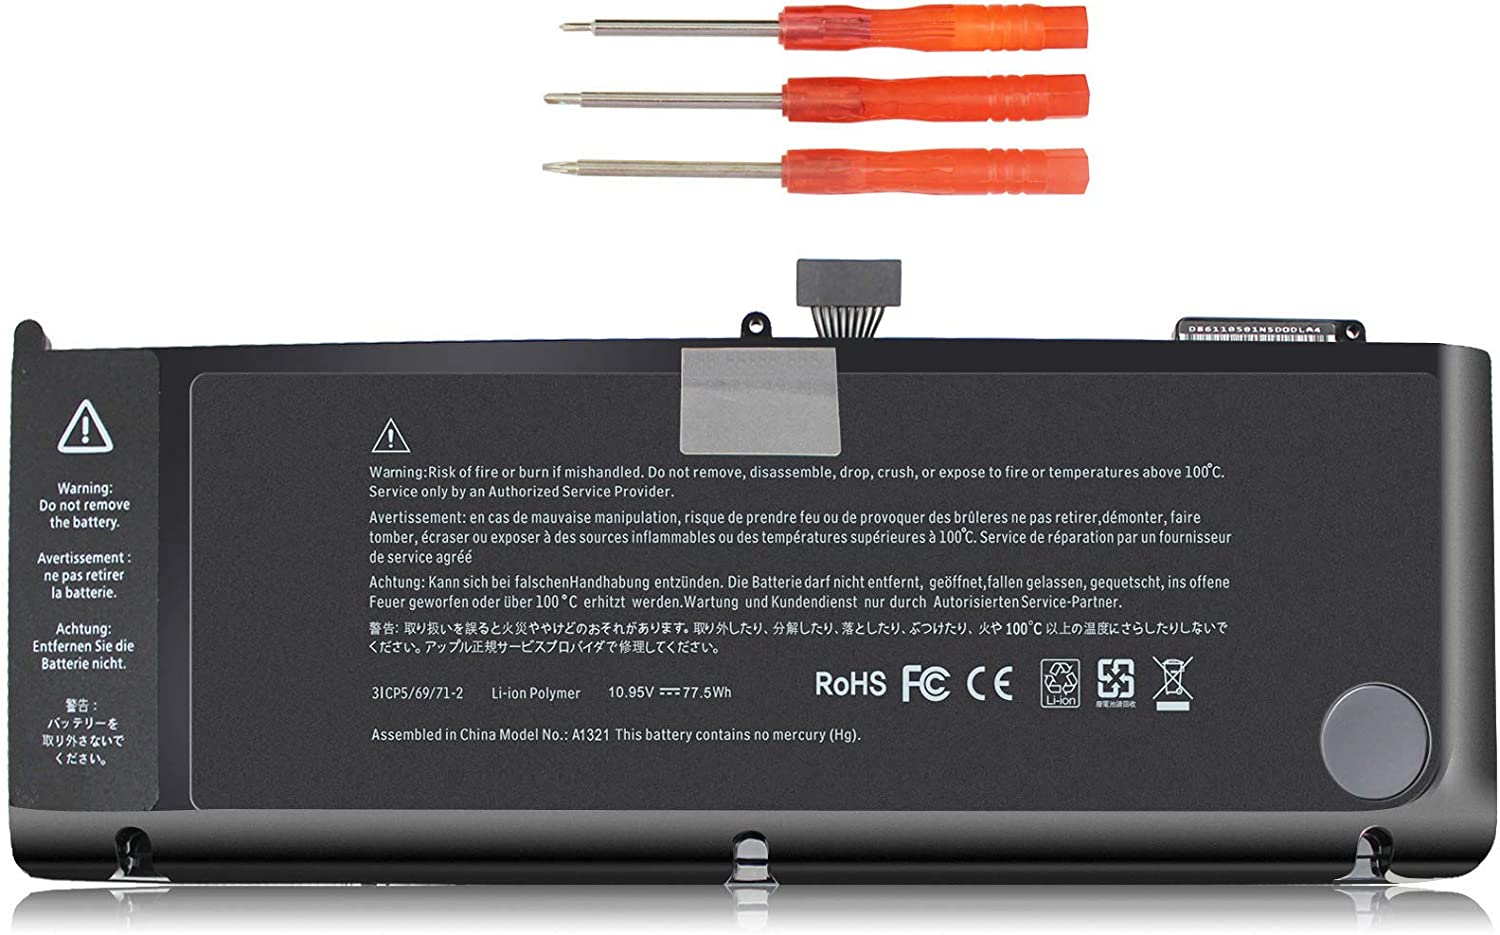 ECHEER A1321 New Laptop Battery Compatible with MacBook Pro 15 inch A1286 Battery (Mid 2009, Mid 2010 Version Only),Fit MB986LL/A MC373LL/A MC371LL/A MC372LL/A MB985LL/A MC118LL/A 10.95V 77.5Wh 6 Cell